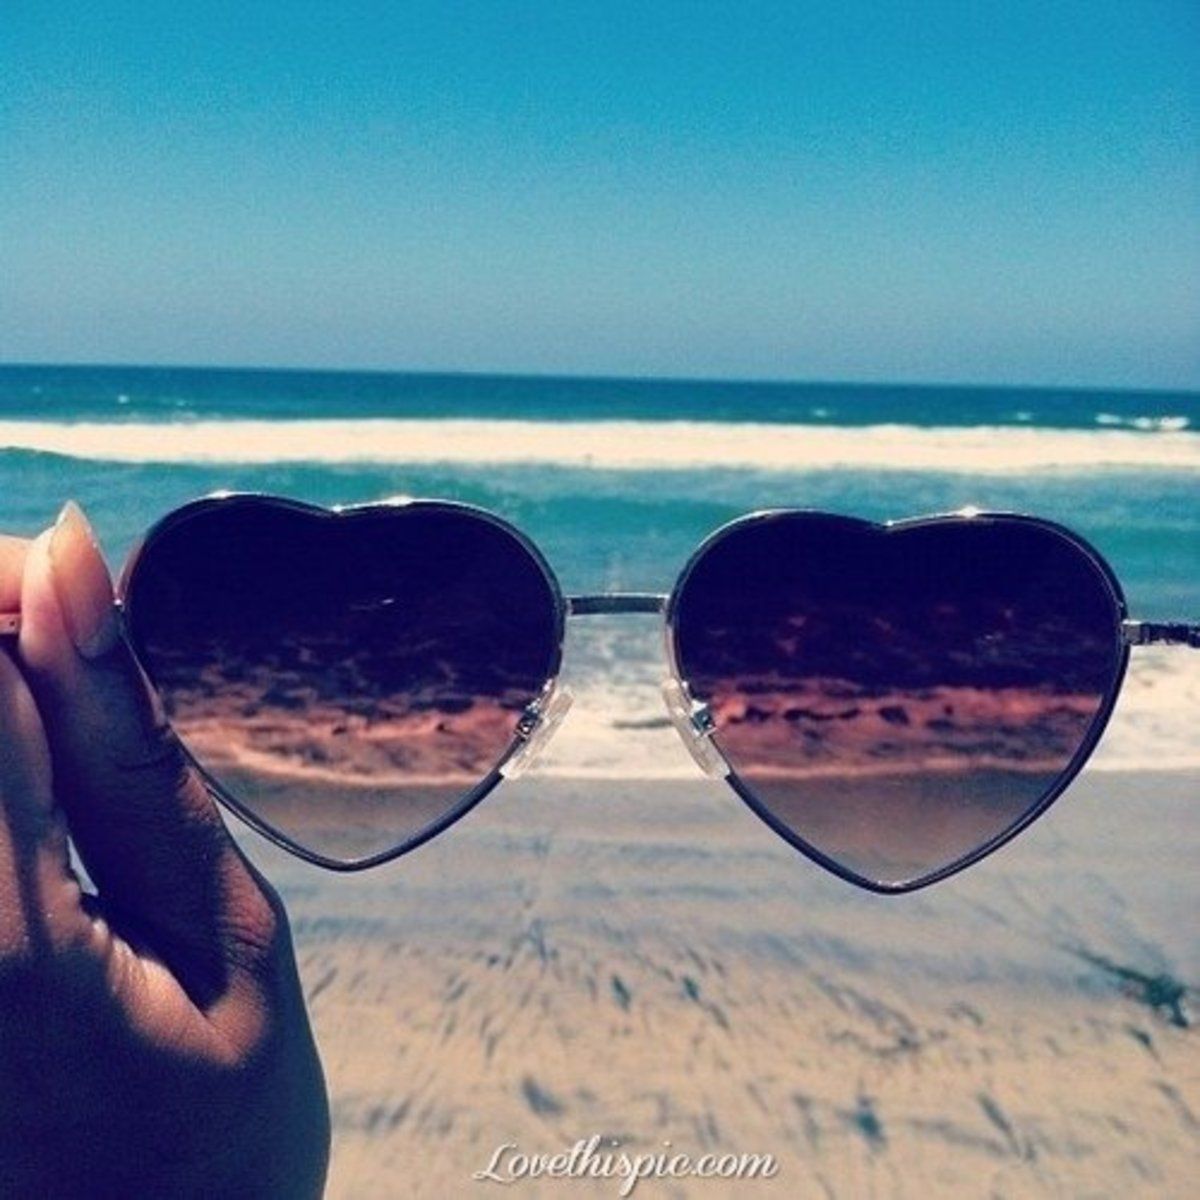 Sunglasses can help with seasonal allergy relief because they protect the eyes from allergen's floating around in the air.